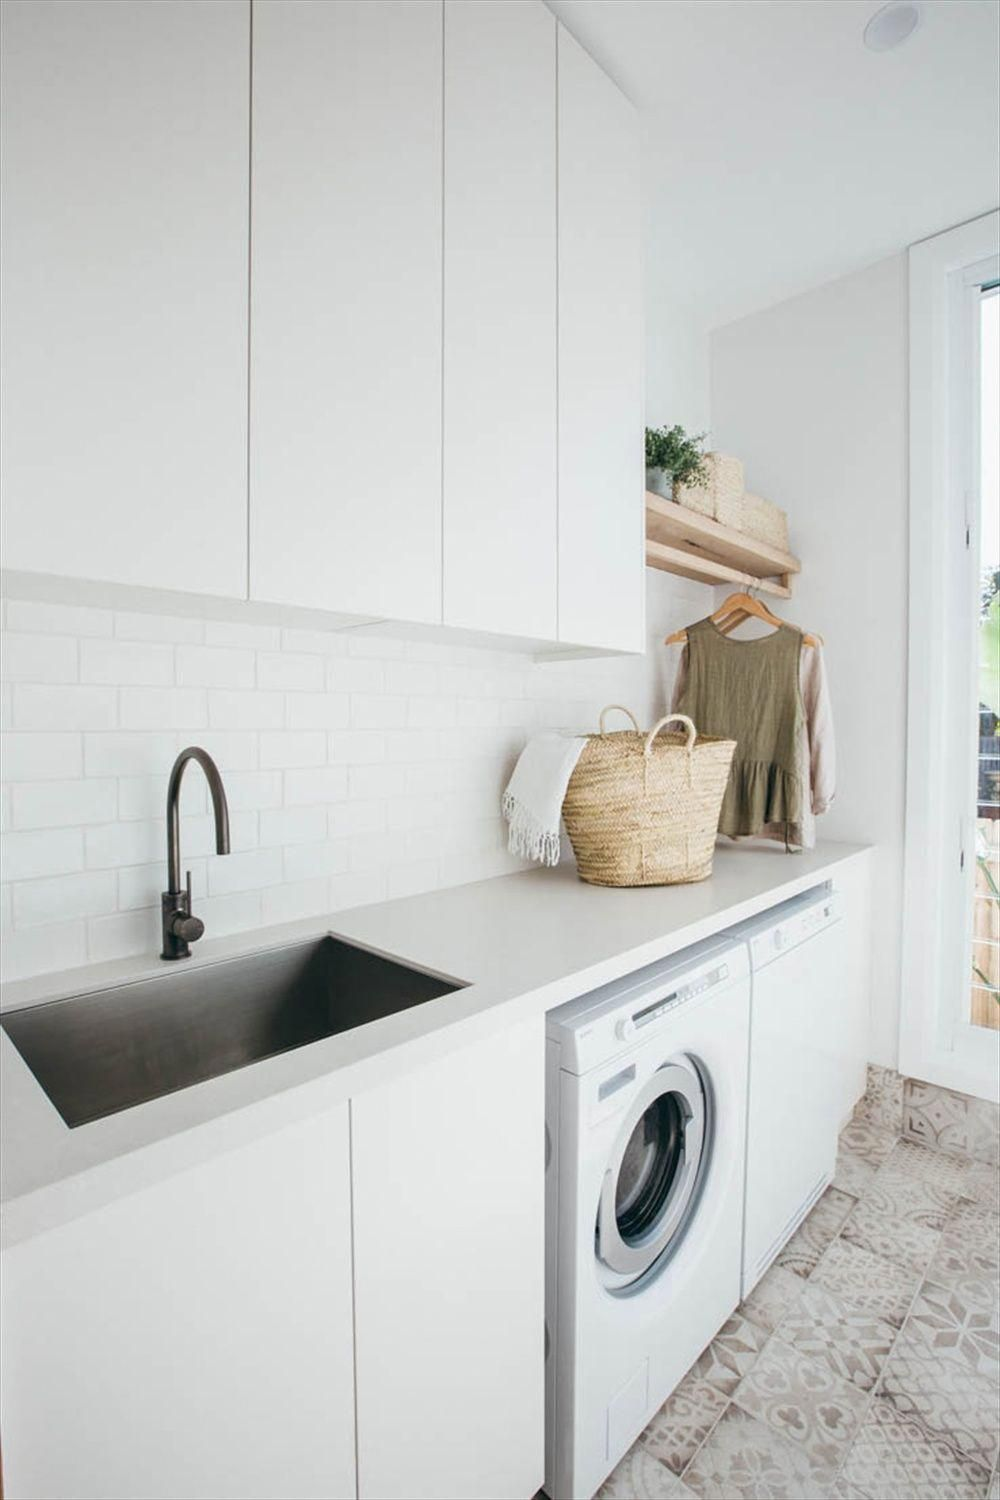 What Do You Think Of This Laundry Rooms Idea I Got From Beaumont Tiles Check Out More Ideas Here Tile Com Au Laundry Design Laundry Room Update Laundry Decor